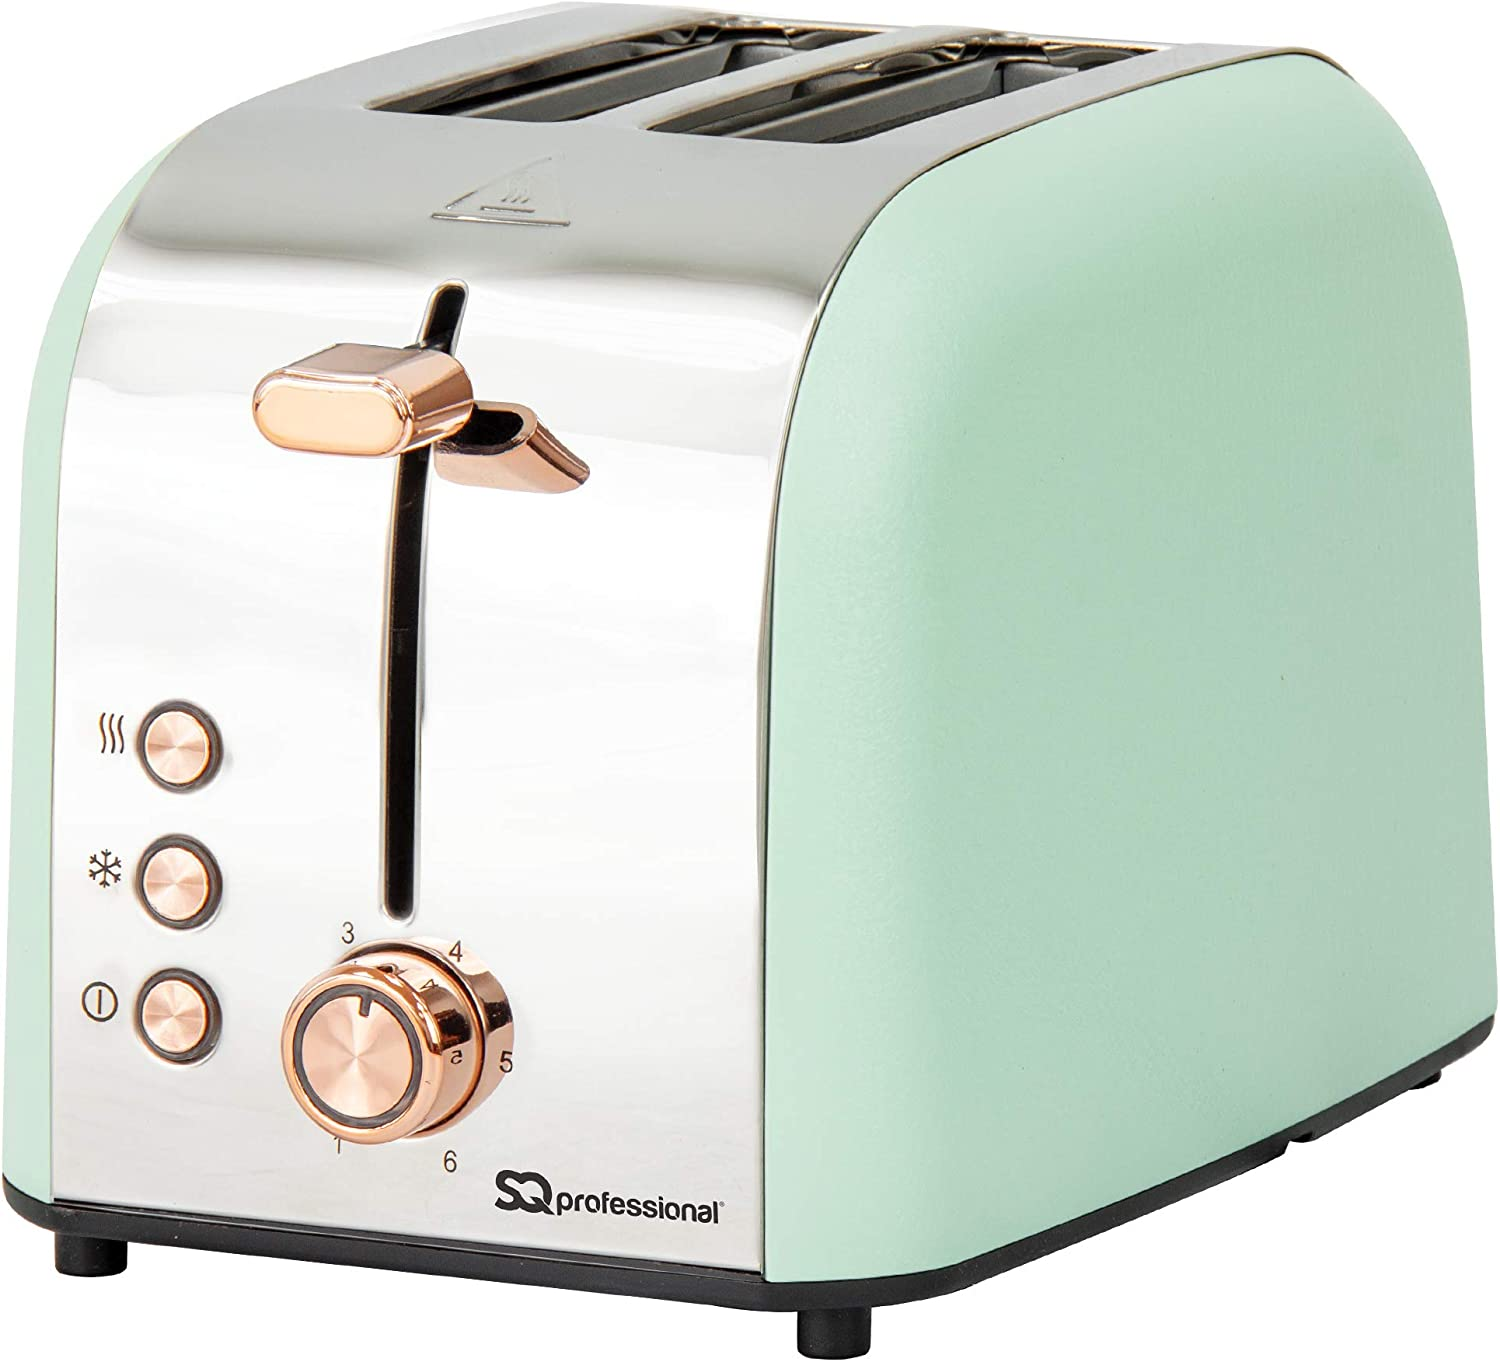 SQ Professional Epoque 3pc Breakfast Set -Kettle with Rose Gold Accents -Temperature Display -2 Slice Toaster with Rose Gold Accents, High-Lift, Wide Slots (Green) Green